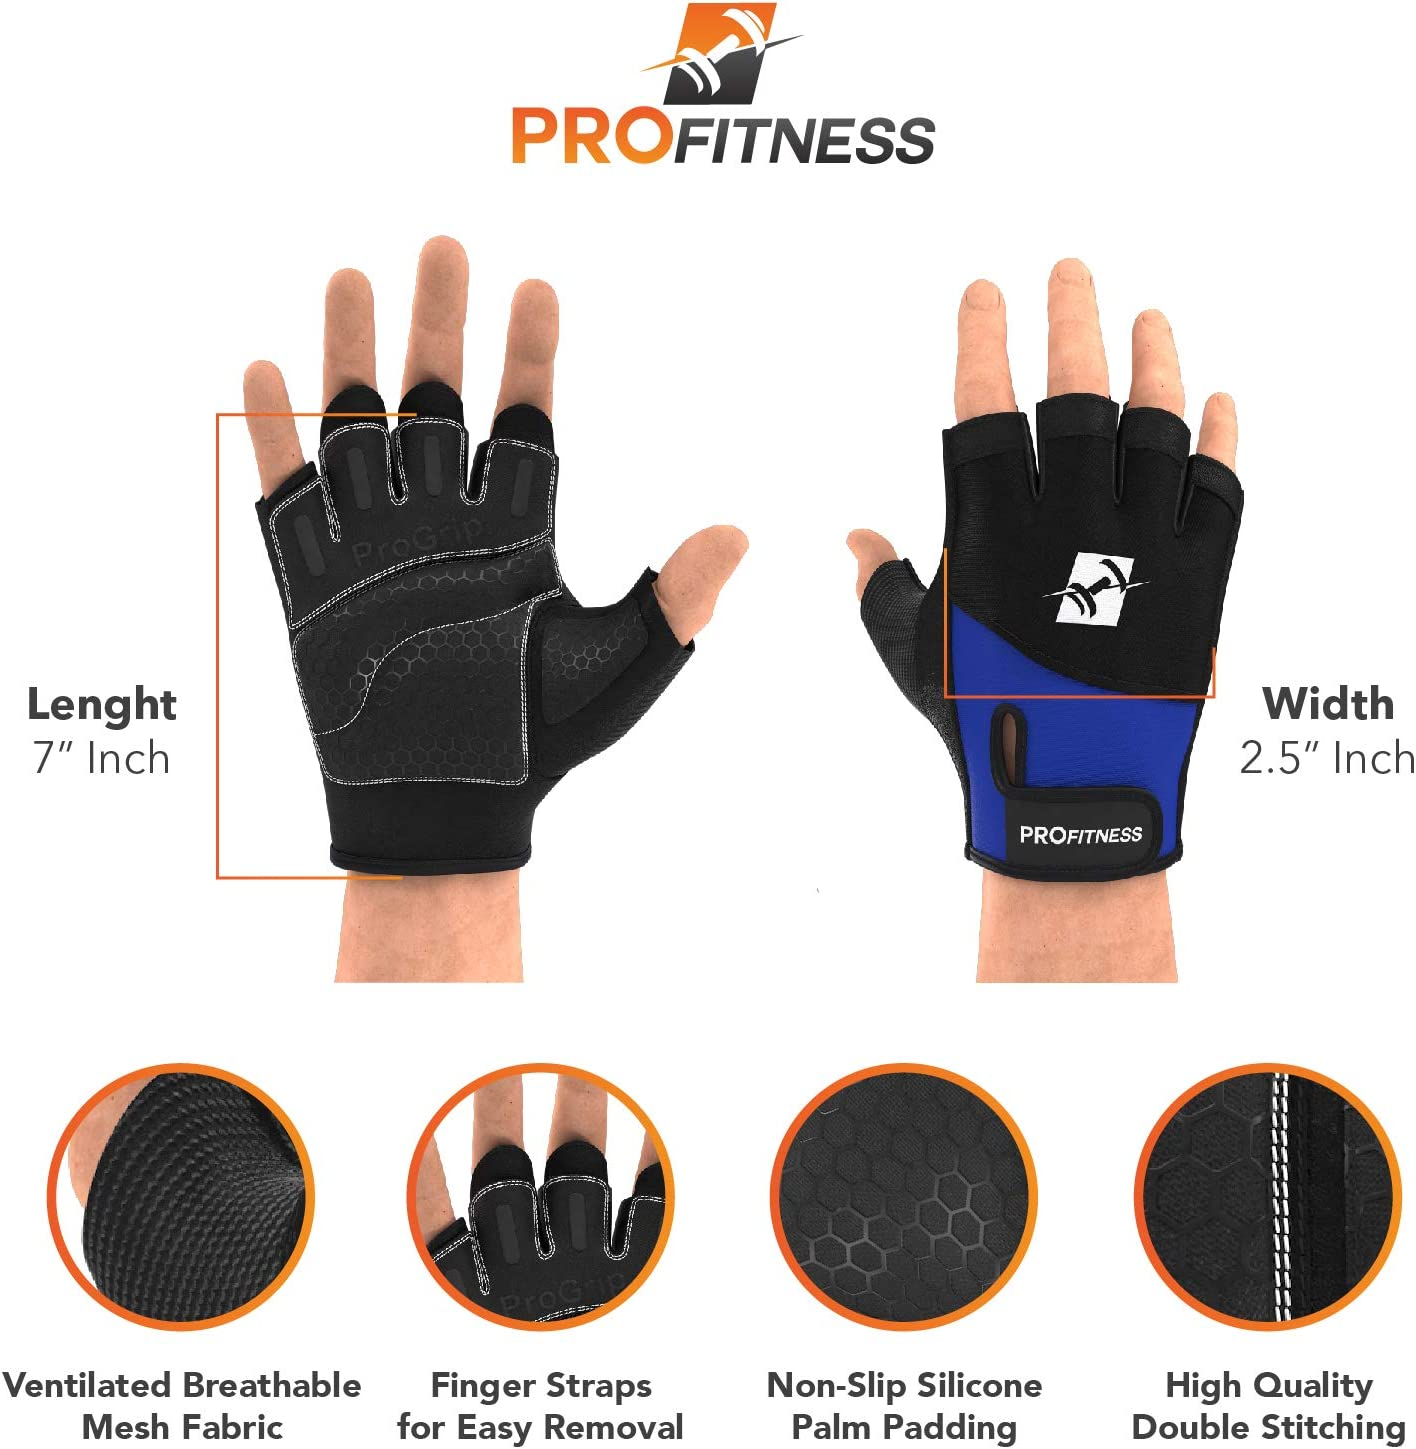 WODs W//Non-Slip Silicone Grip Padding to Avoid Calluses ProFitness Weight Lifting Workout Gloves with Wrist Wrap Support for Men /& Women Weightlifting for Cross Training Gym Work Out Training